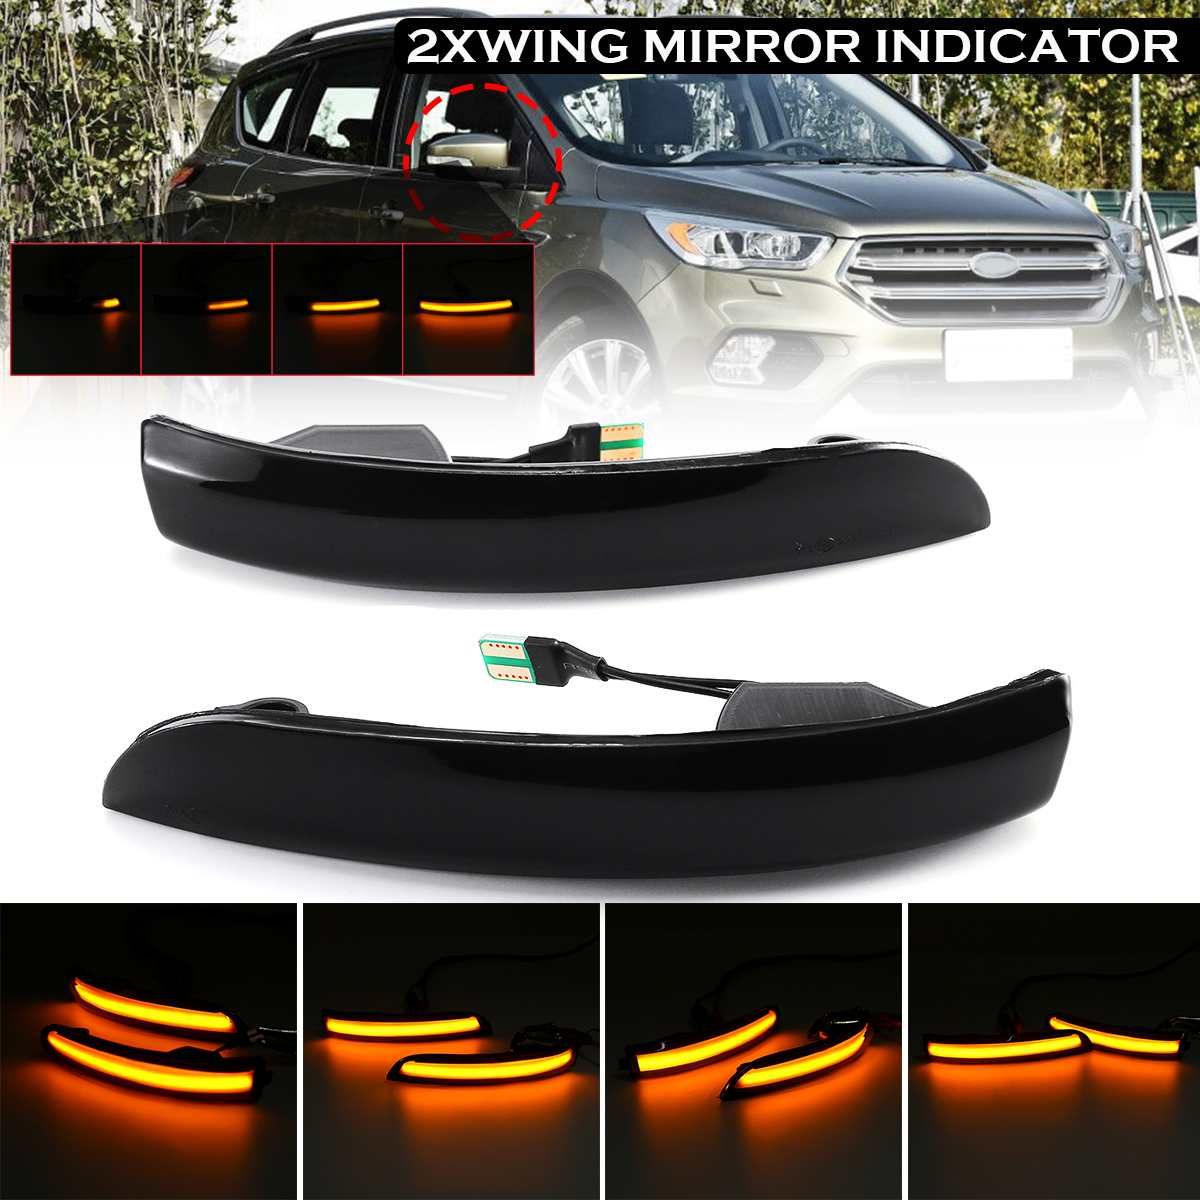 Pair Flowing Turn Signal Light LED Side Wing Rearview Mirror Dynamic Indicator Blinker Light For Ford Kuga / Escape 2013-2018